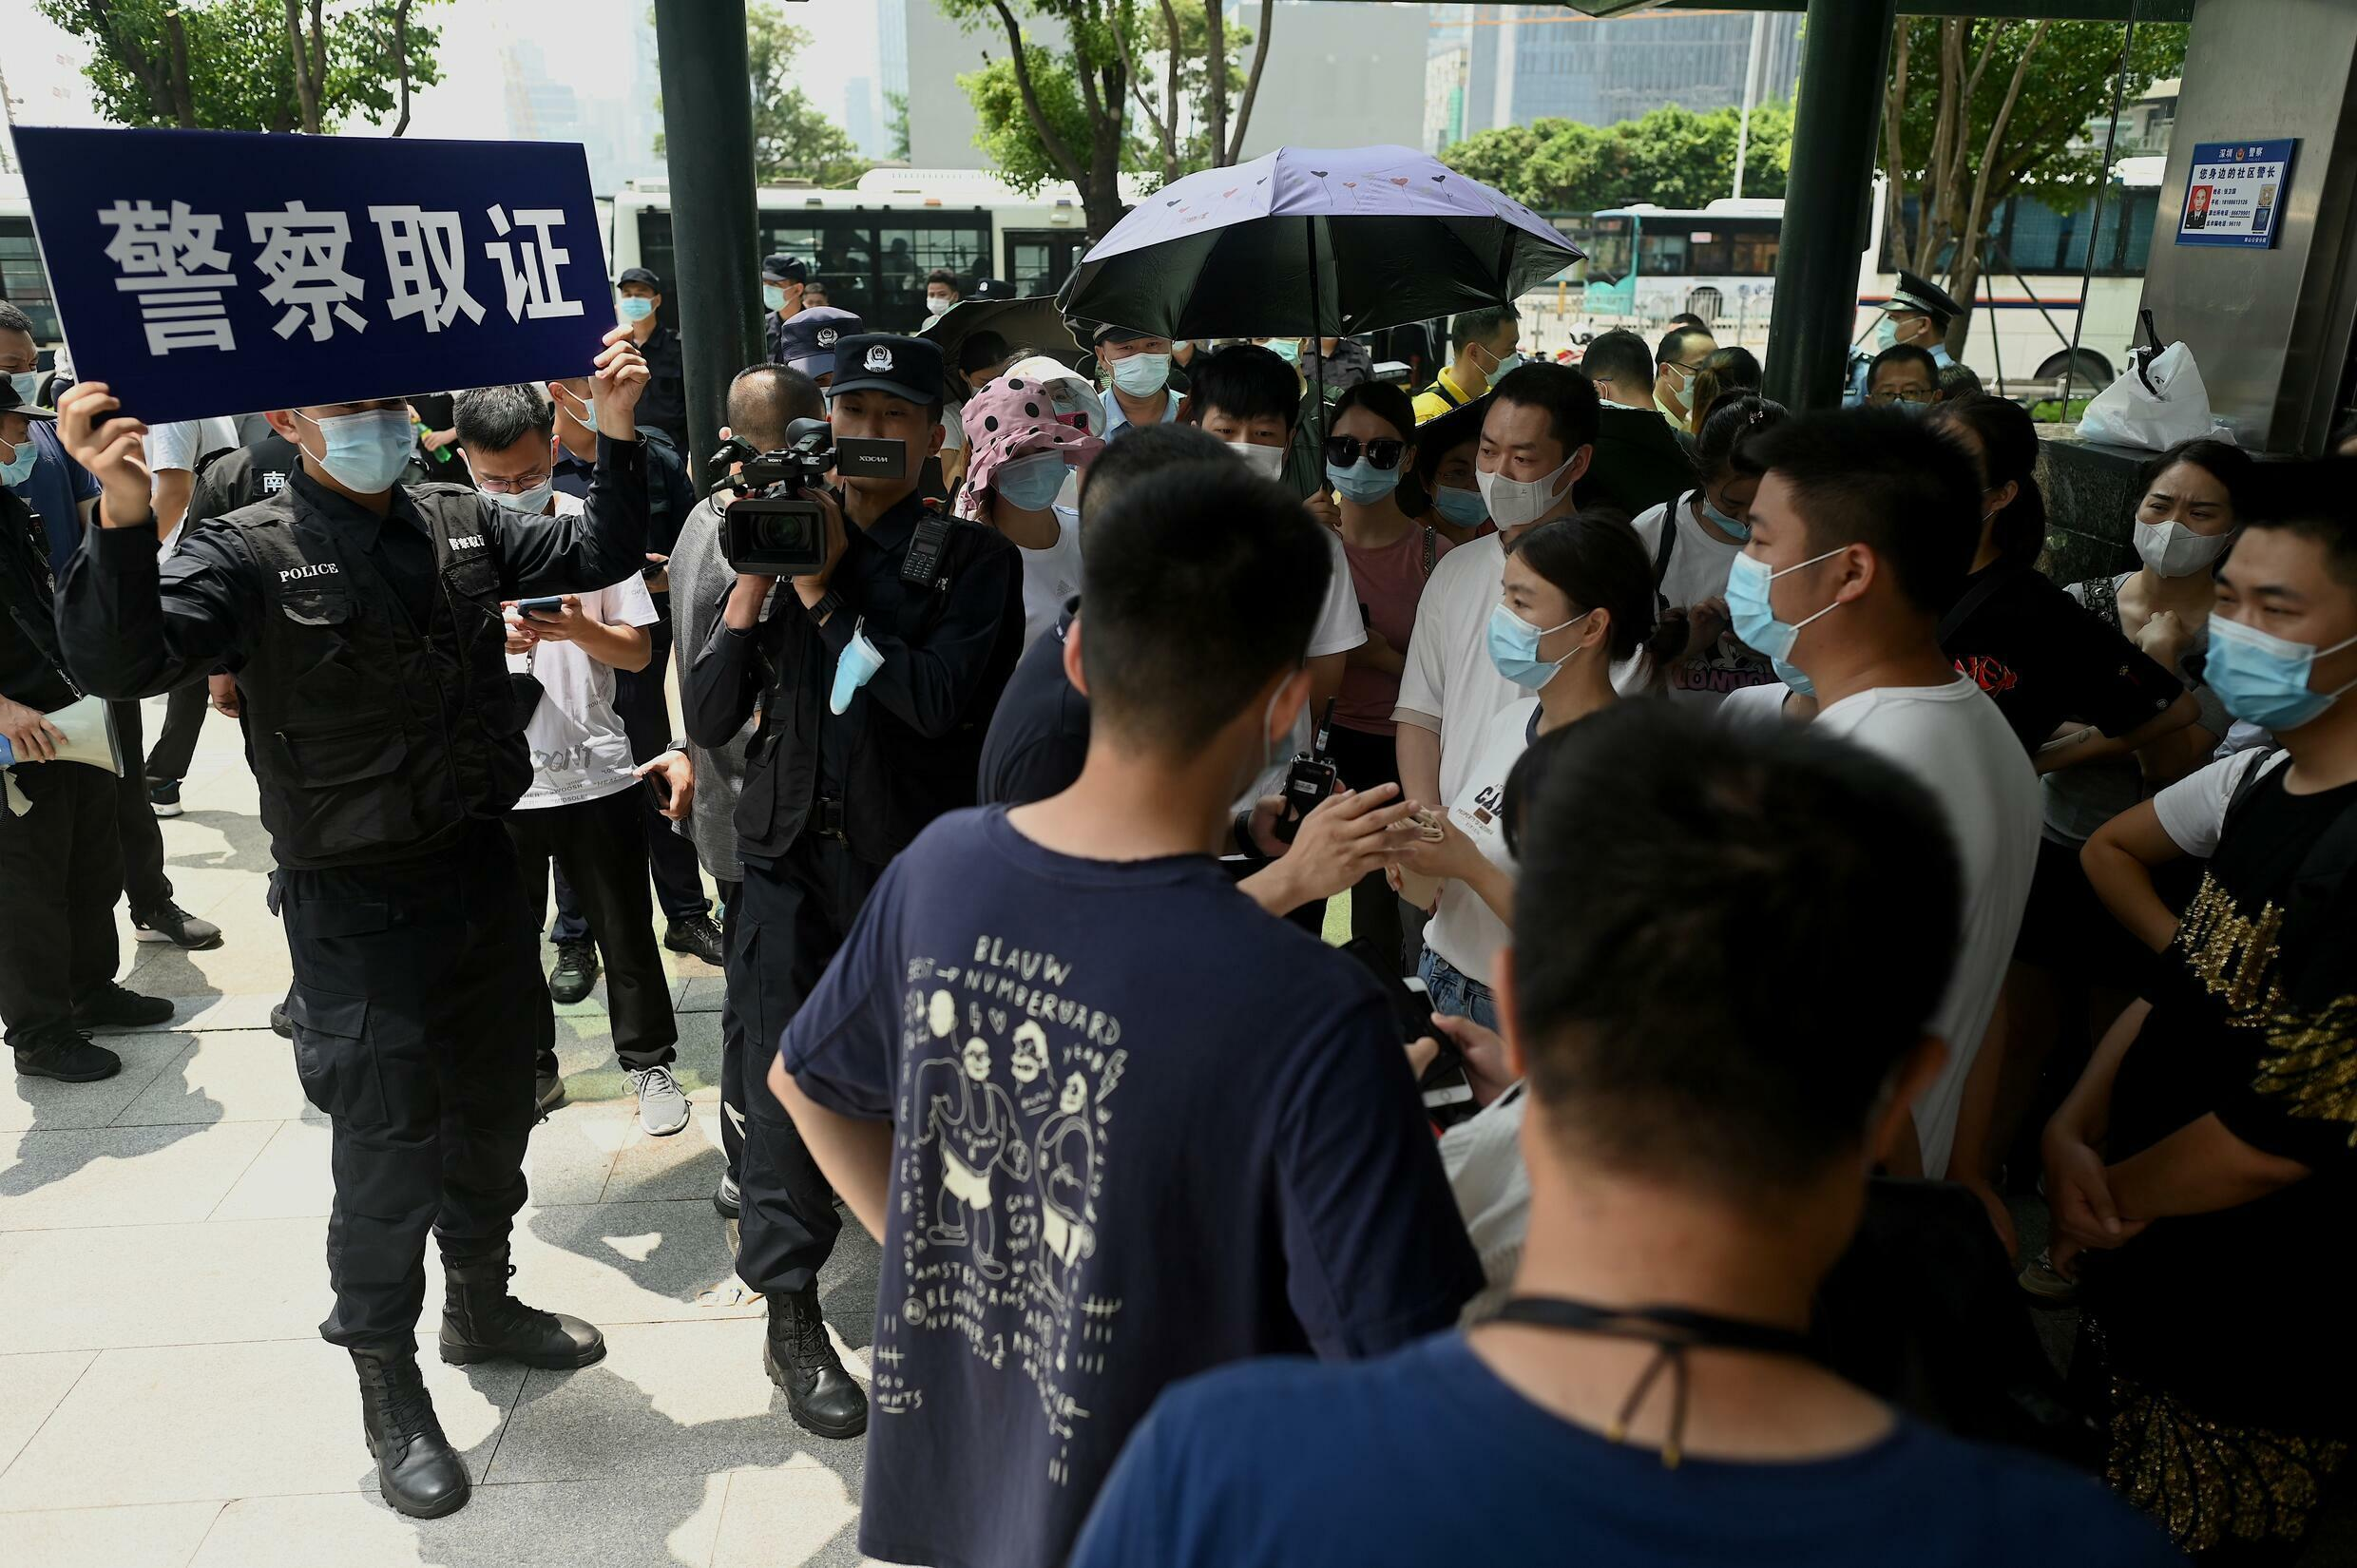 Police officers frame protesters gathered outside Evergrande headquarters in Shenzhen on September 16, 2021